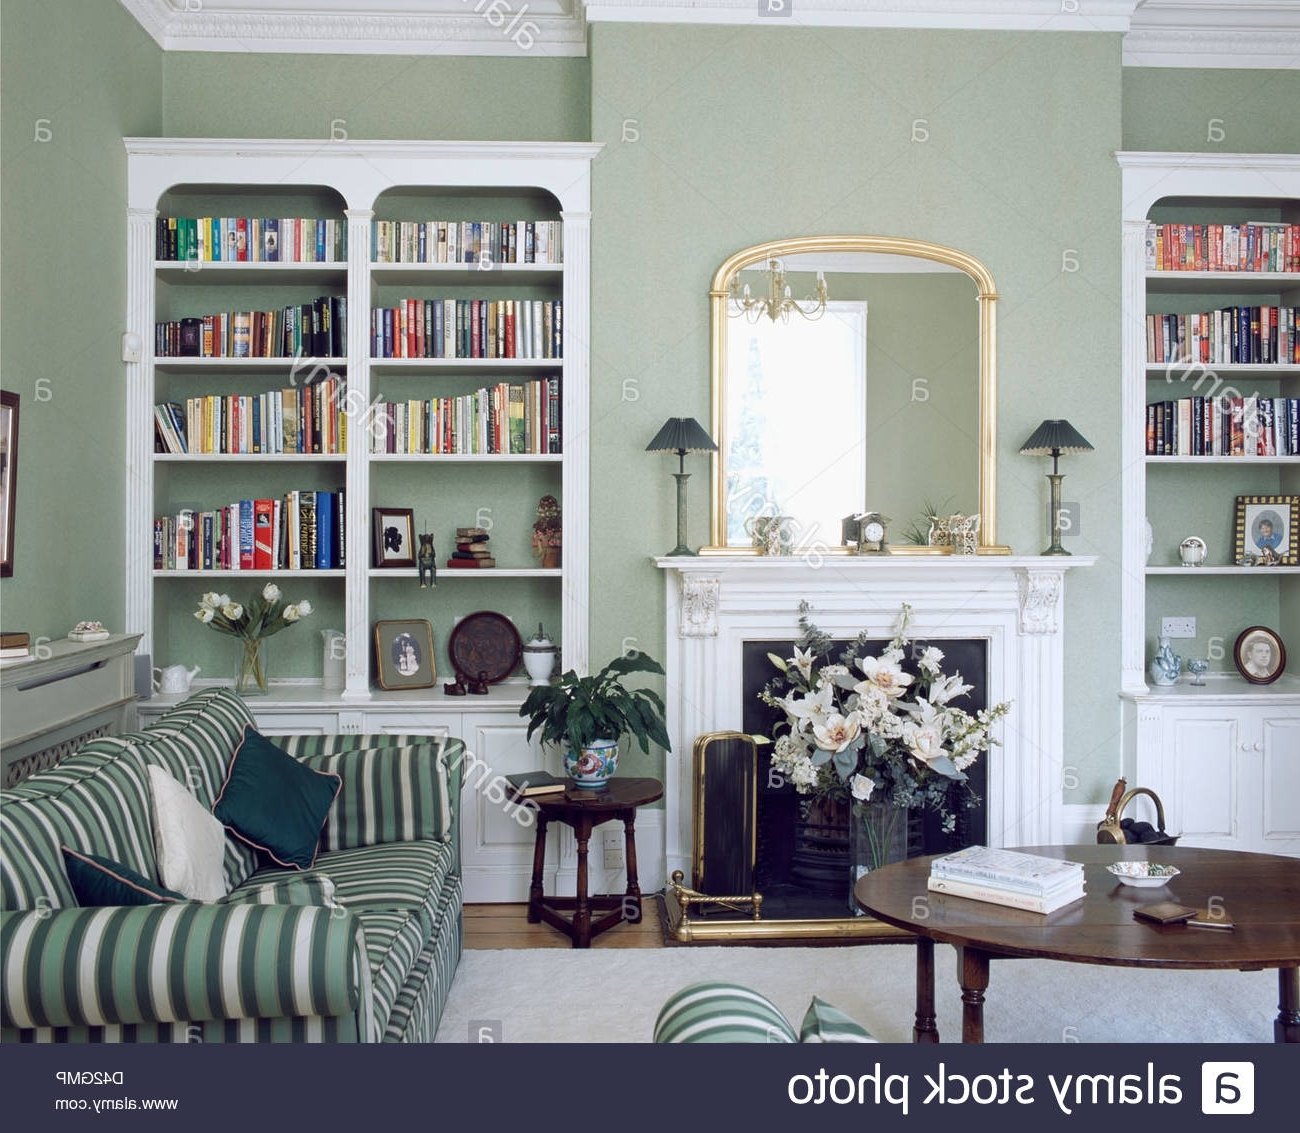 Latest Sofa Bookcases With Fitted White Bookcases On Either Side Of Fireplace In Gray Green (View 4 of 15)